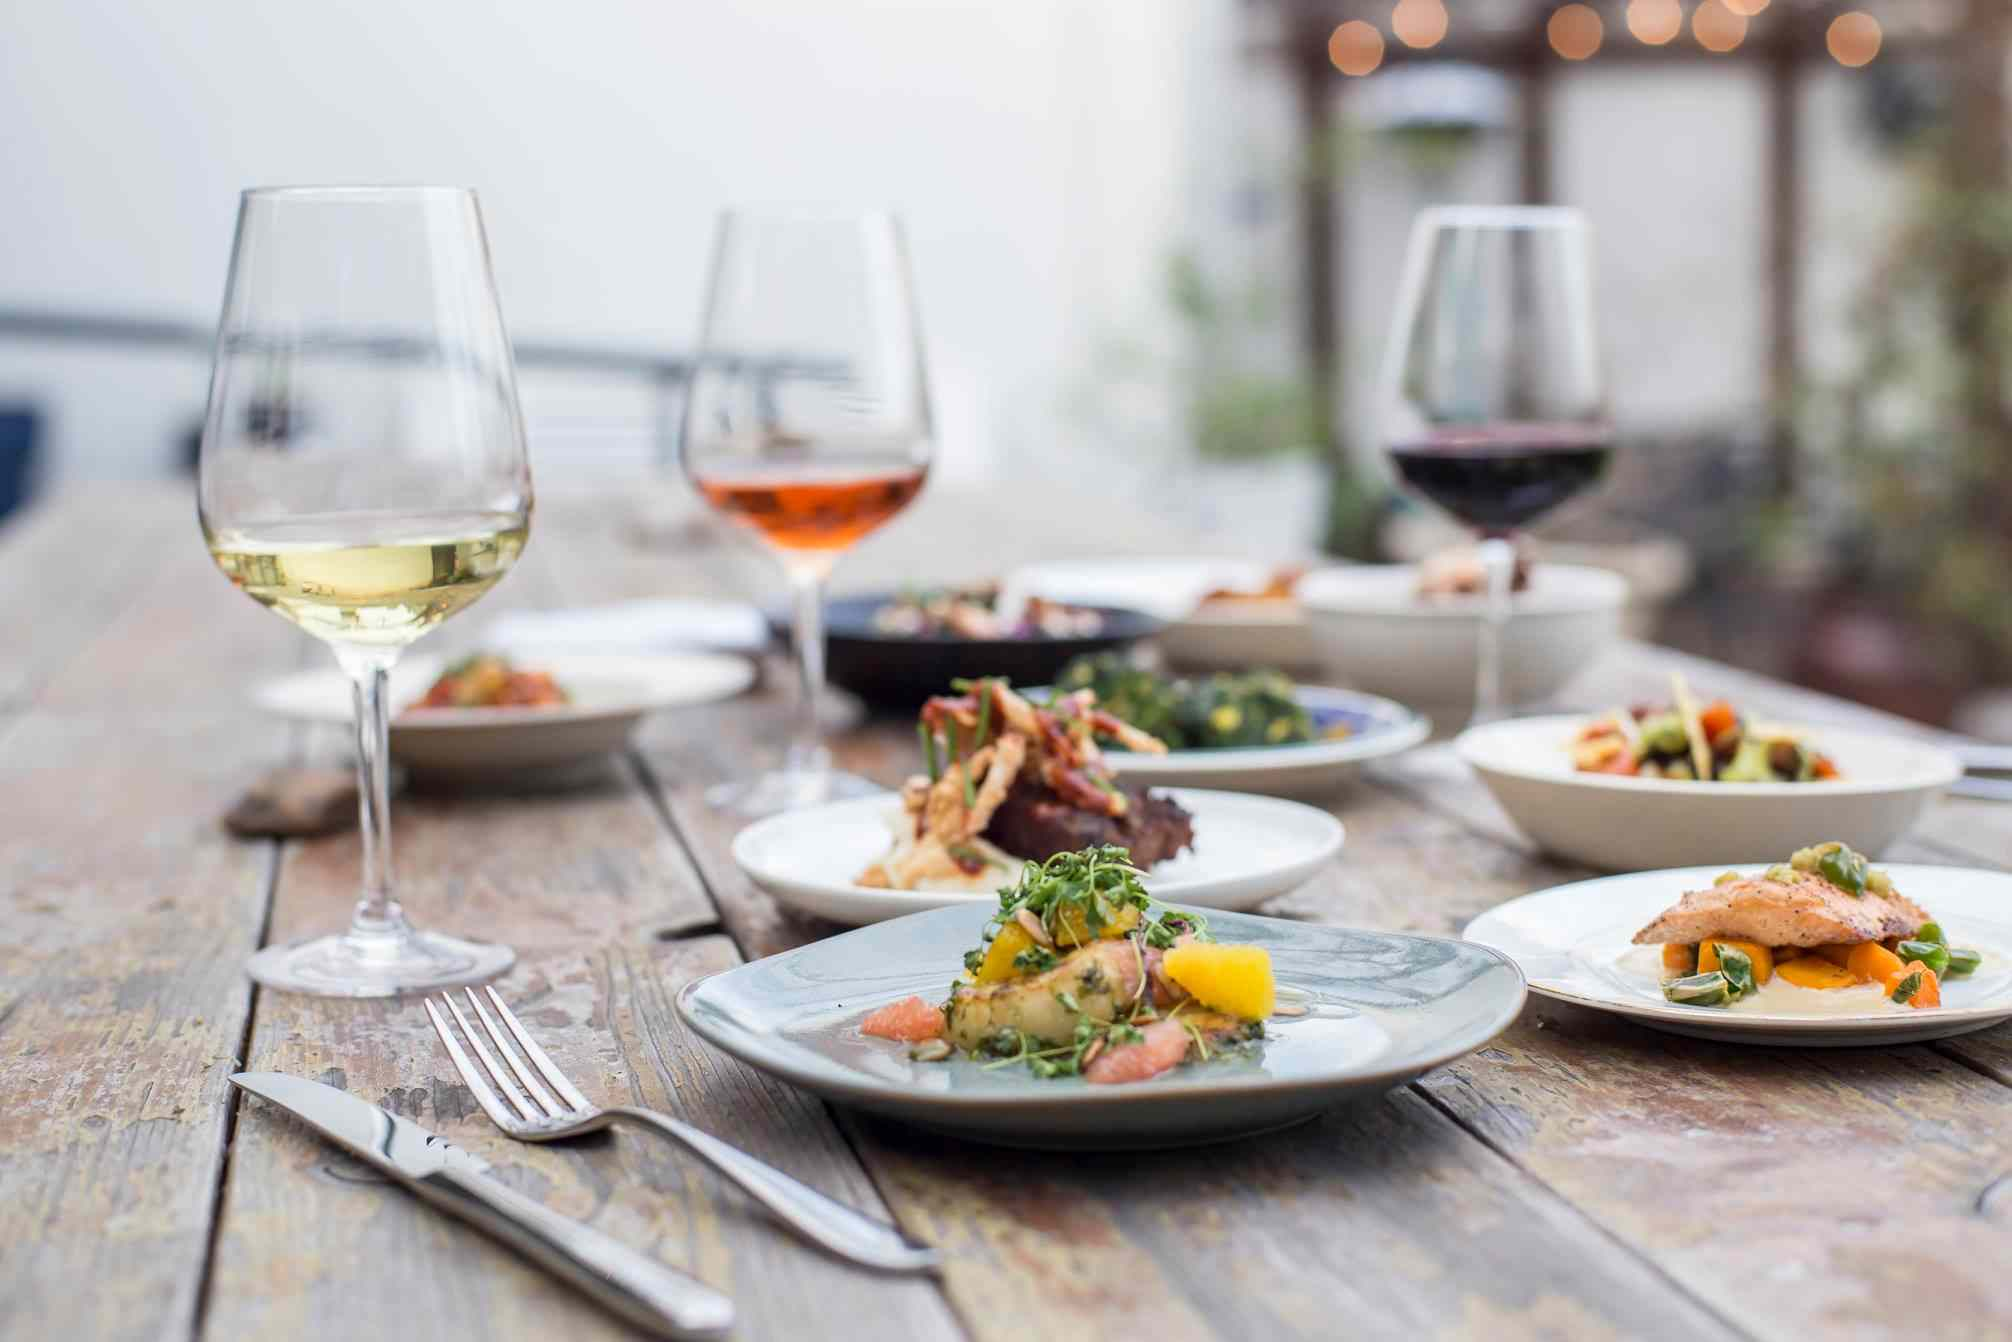 Multiple glasses of wine and plates of food on a wooden table at Cafe Josie